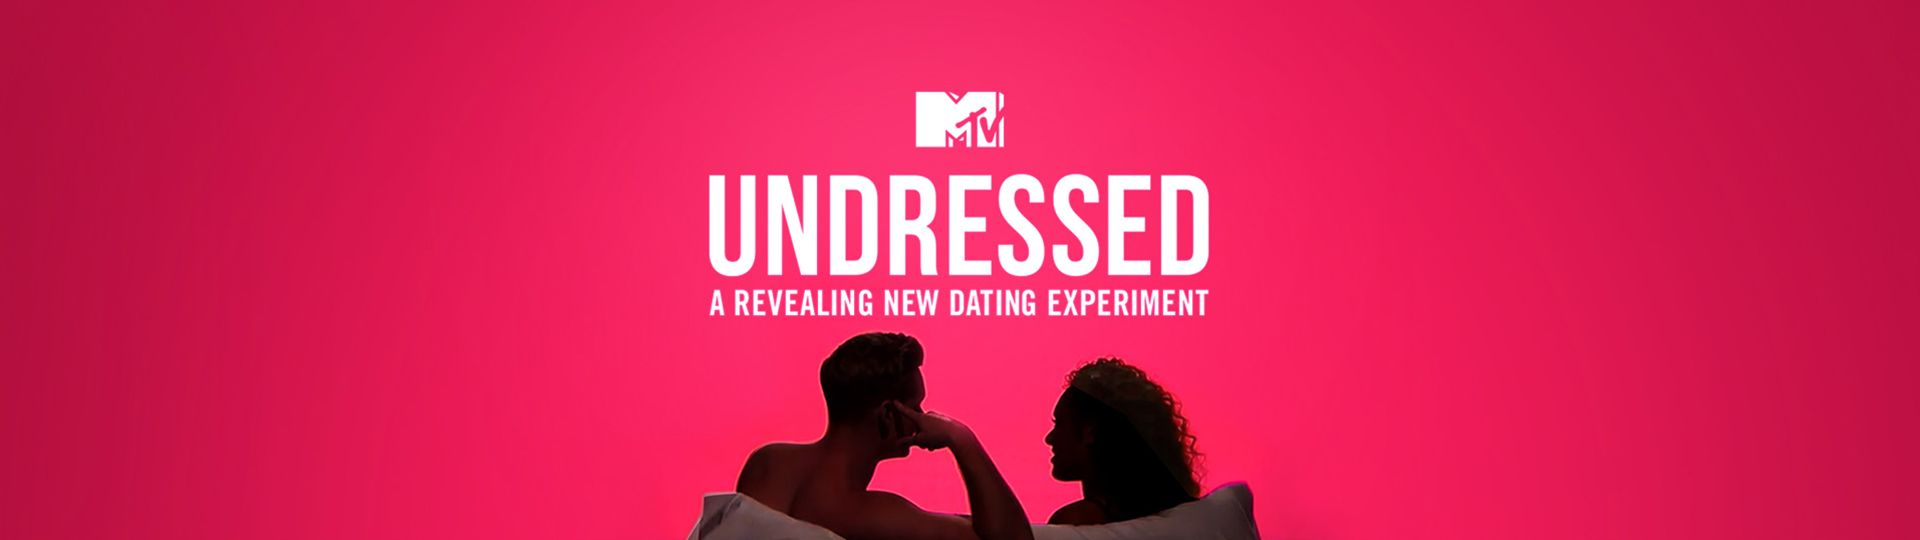 Mtv dating show bedroom decorating